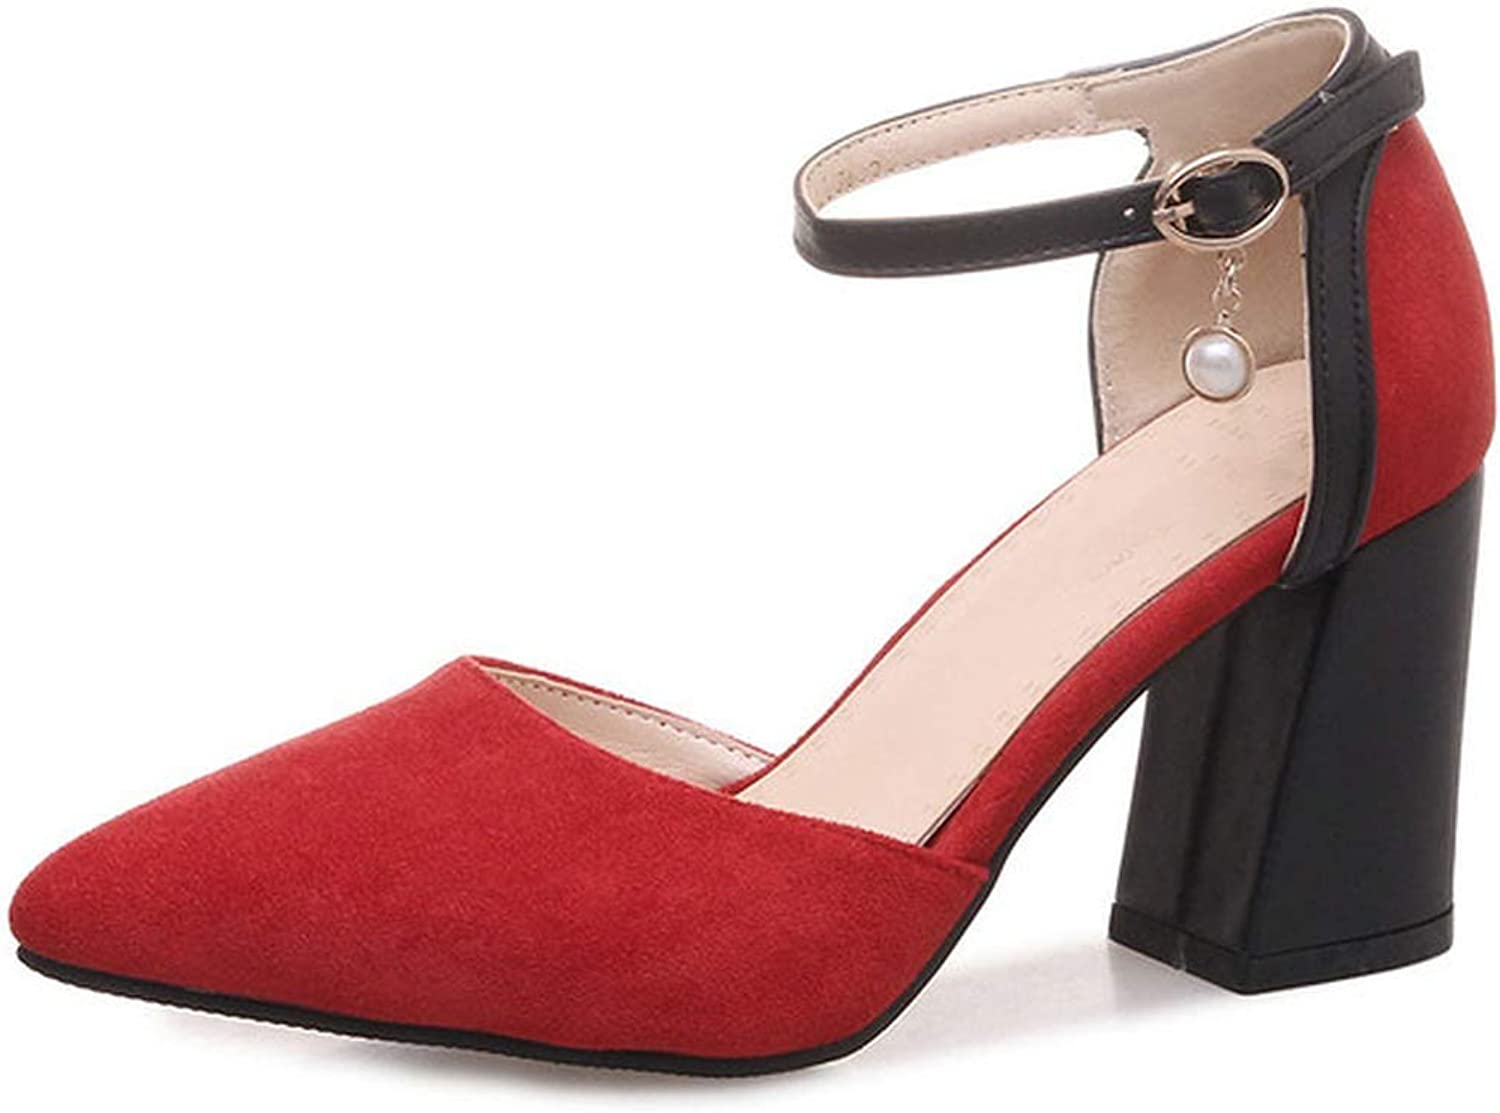 Women Pumps Flock Two-Piece Buckle Pointd Toe Elegant Women shoes